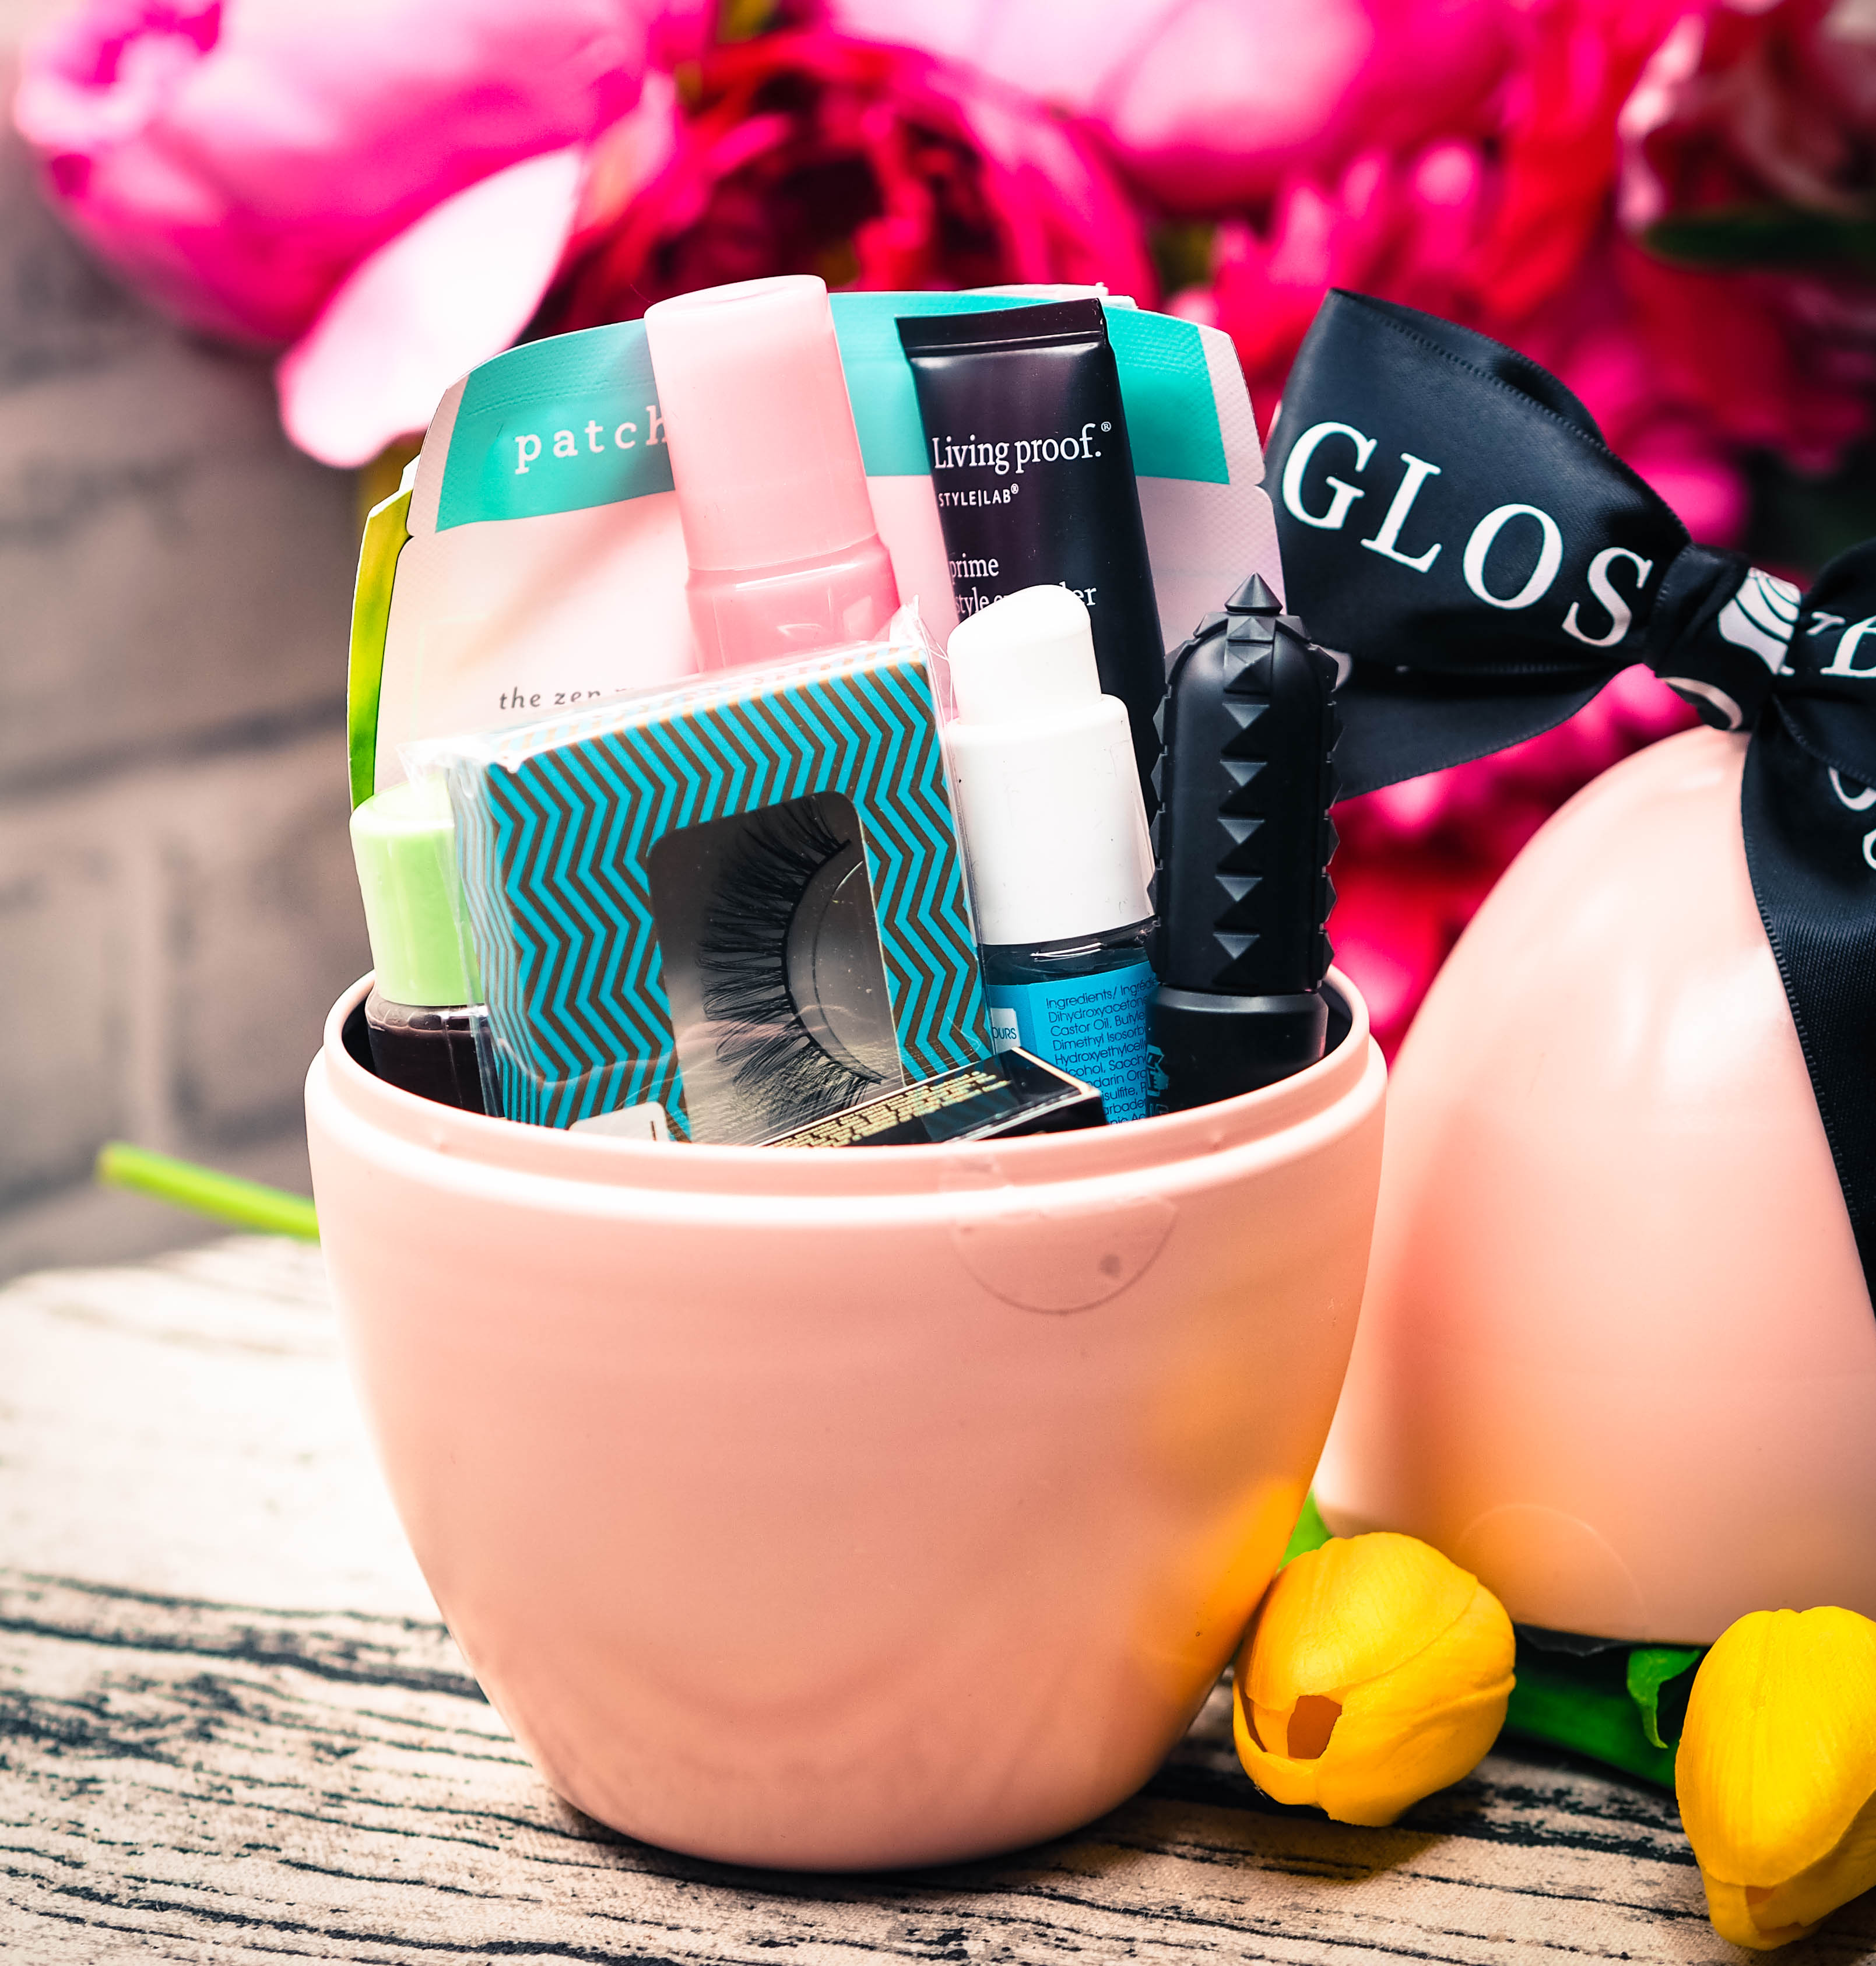 Glossybox Limited Edition Easter Egg 2019